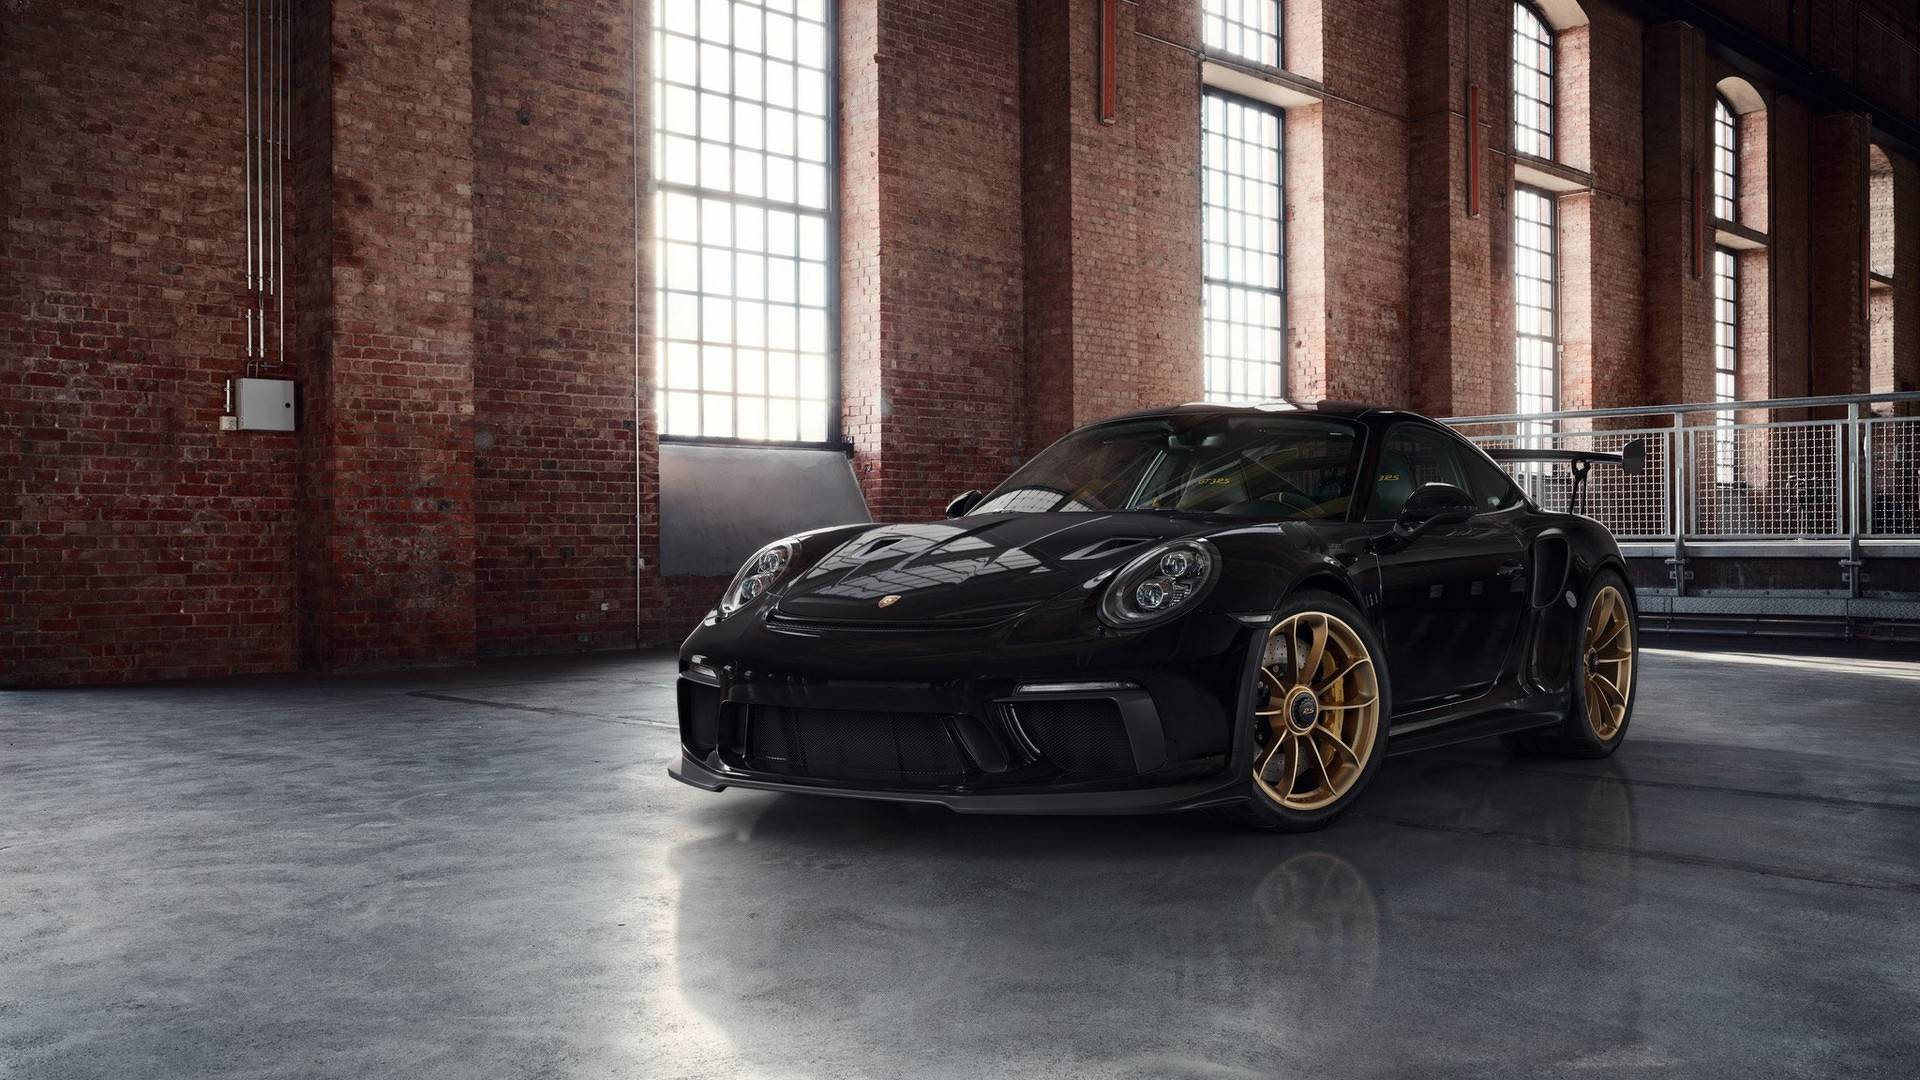 Porsche 911 GT3 RS Looks The Part With Factory Gold-Painted